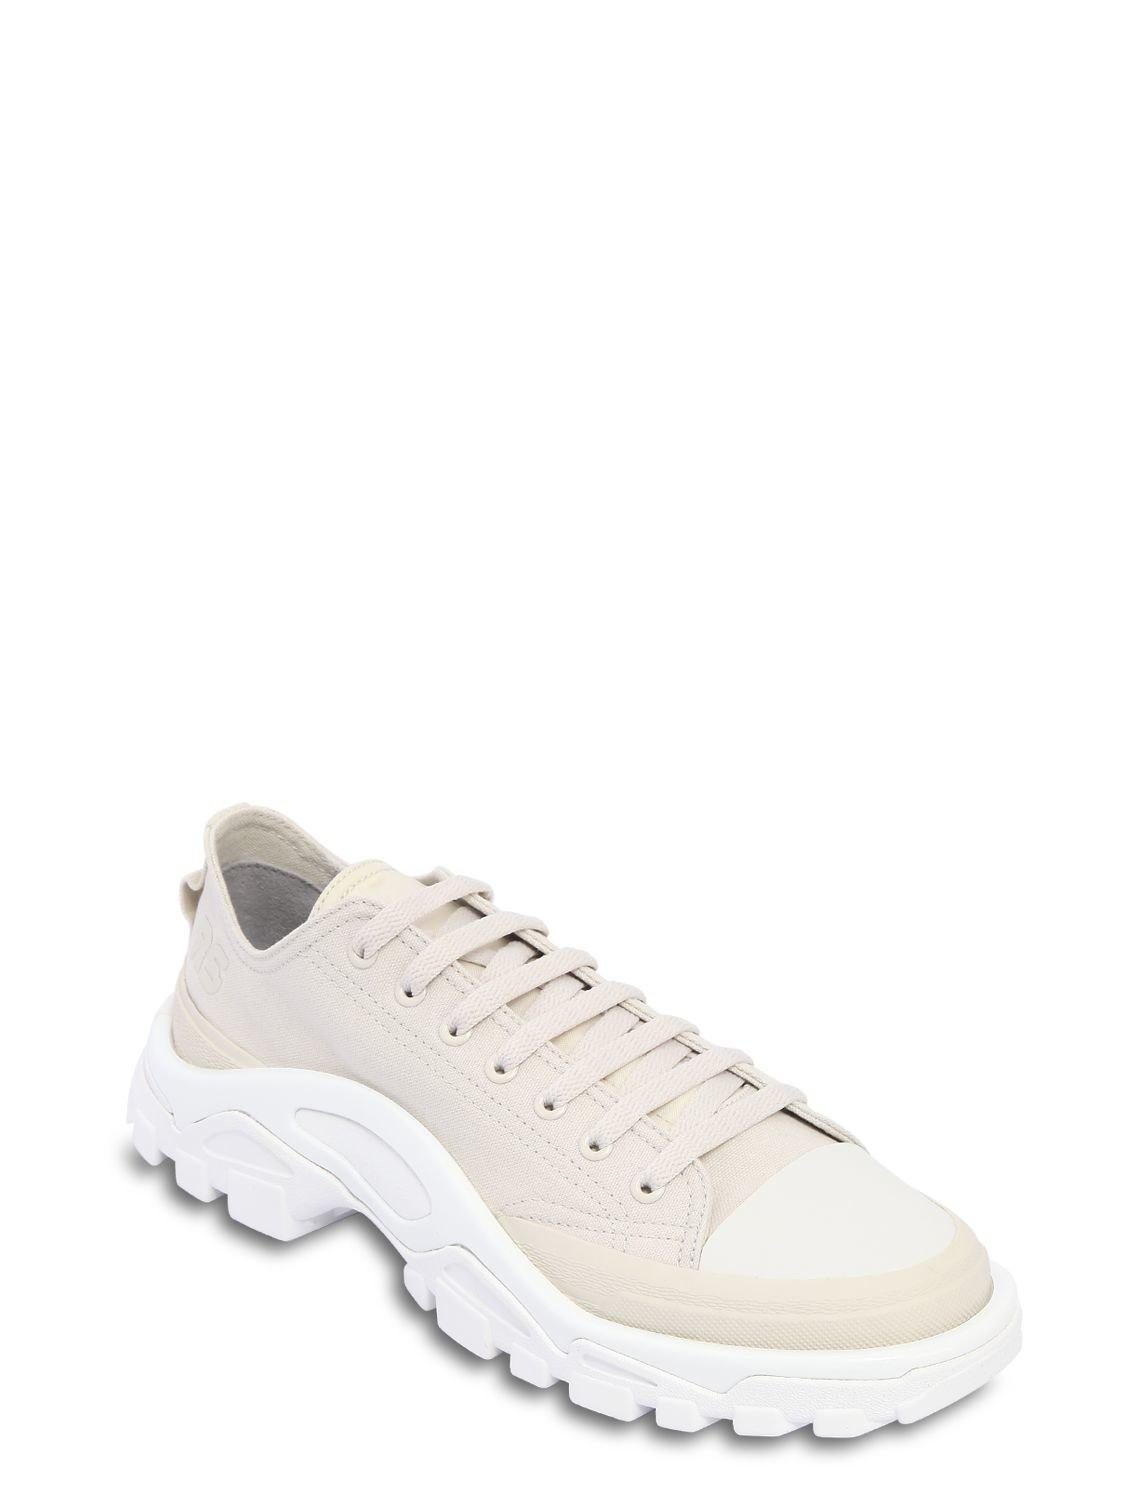 the latest a5cba b35b4 Lyst - adidas By Raf Simons Rs Detroit Runner Sneakers in Wh